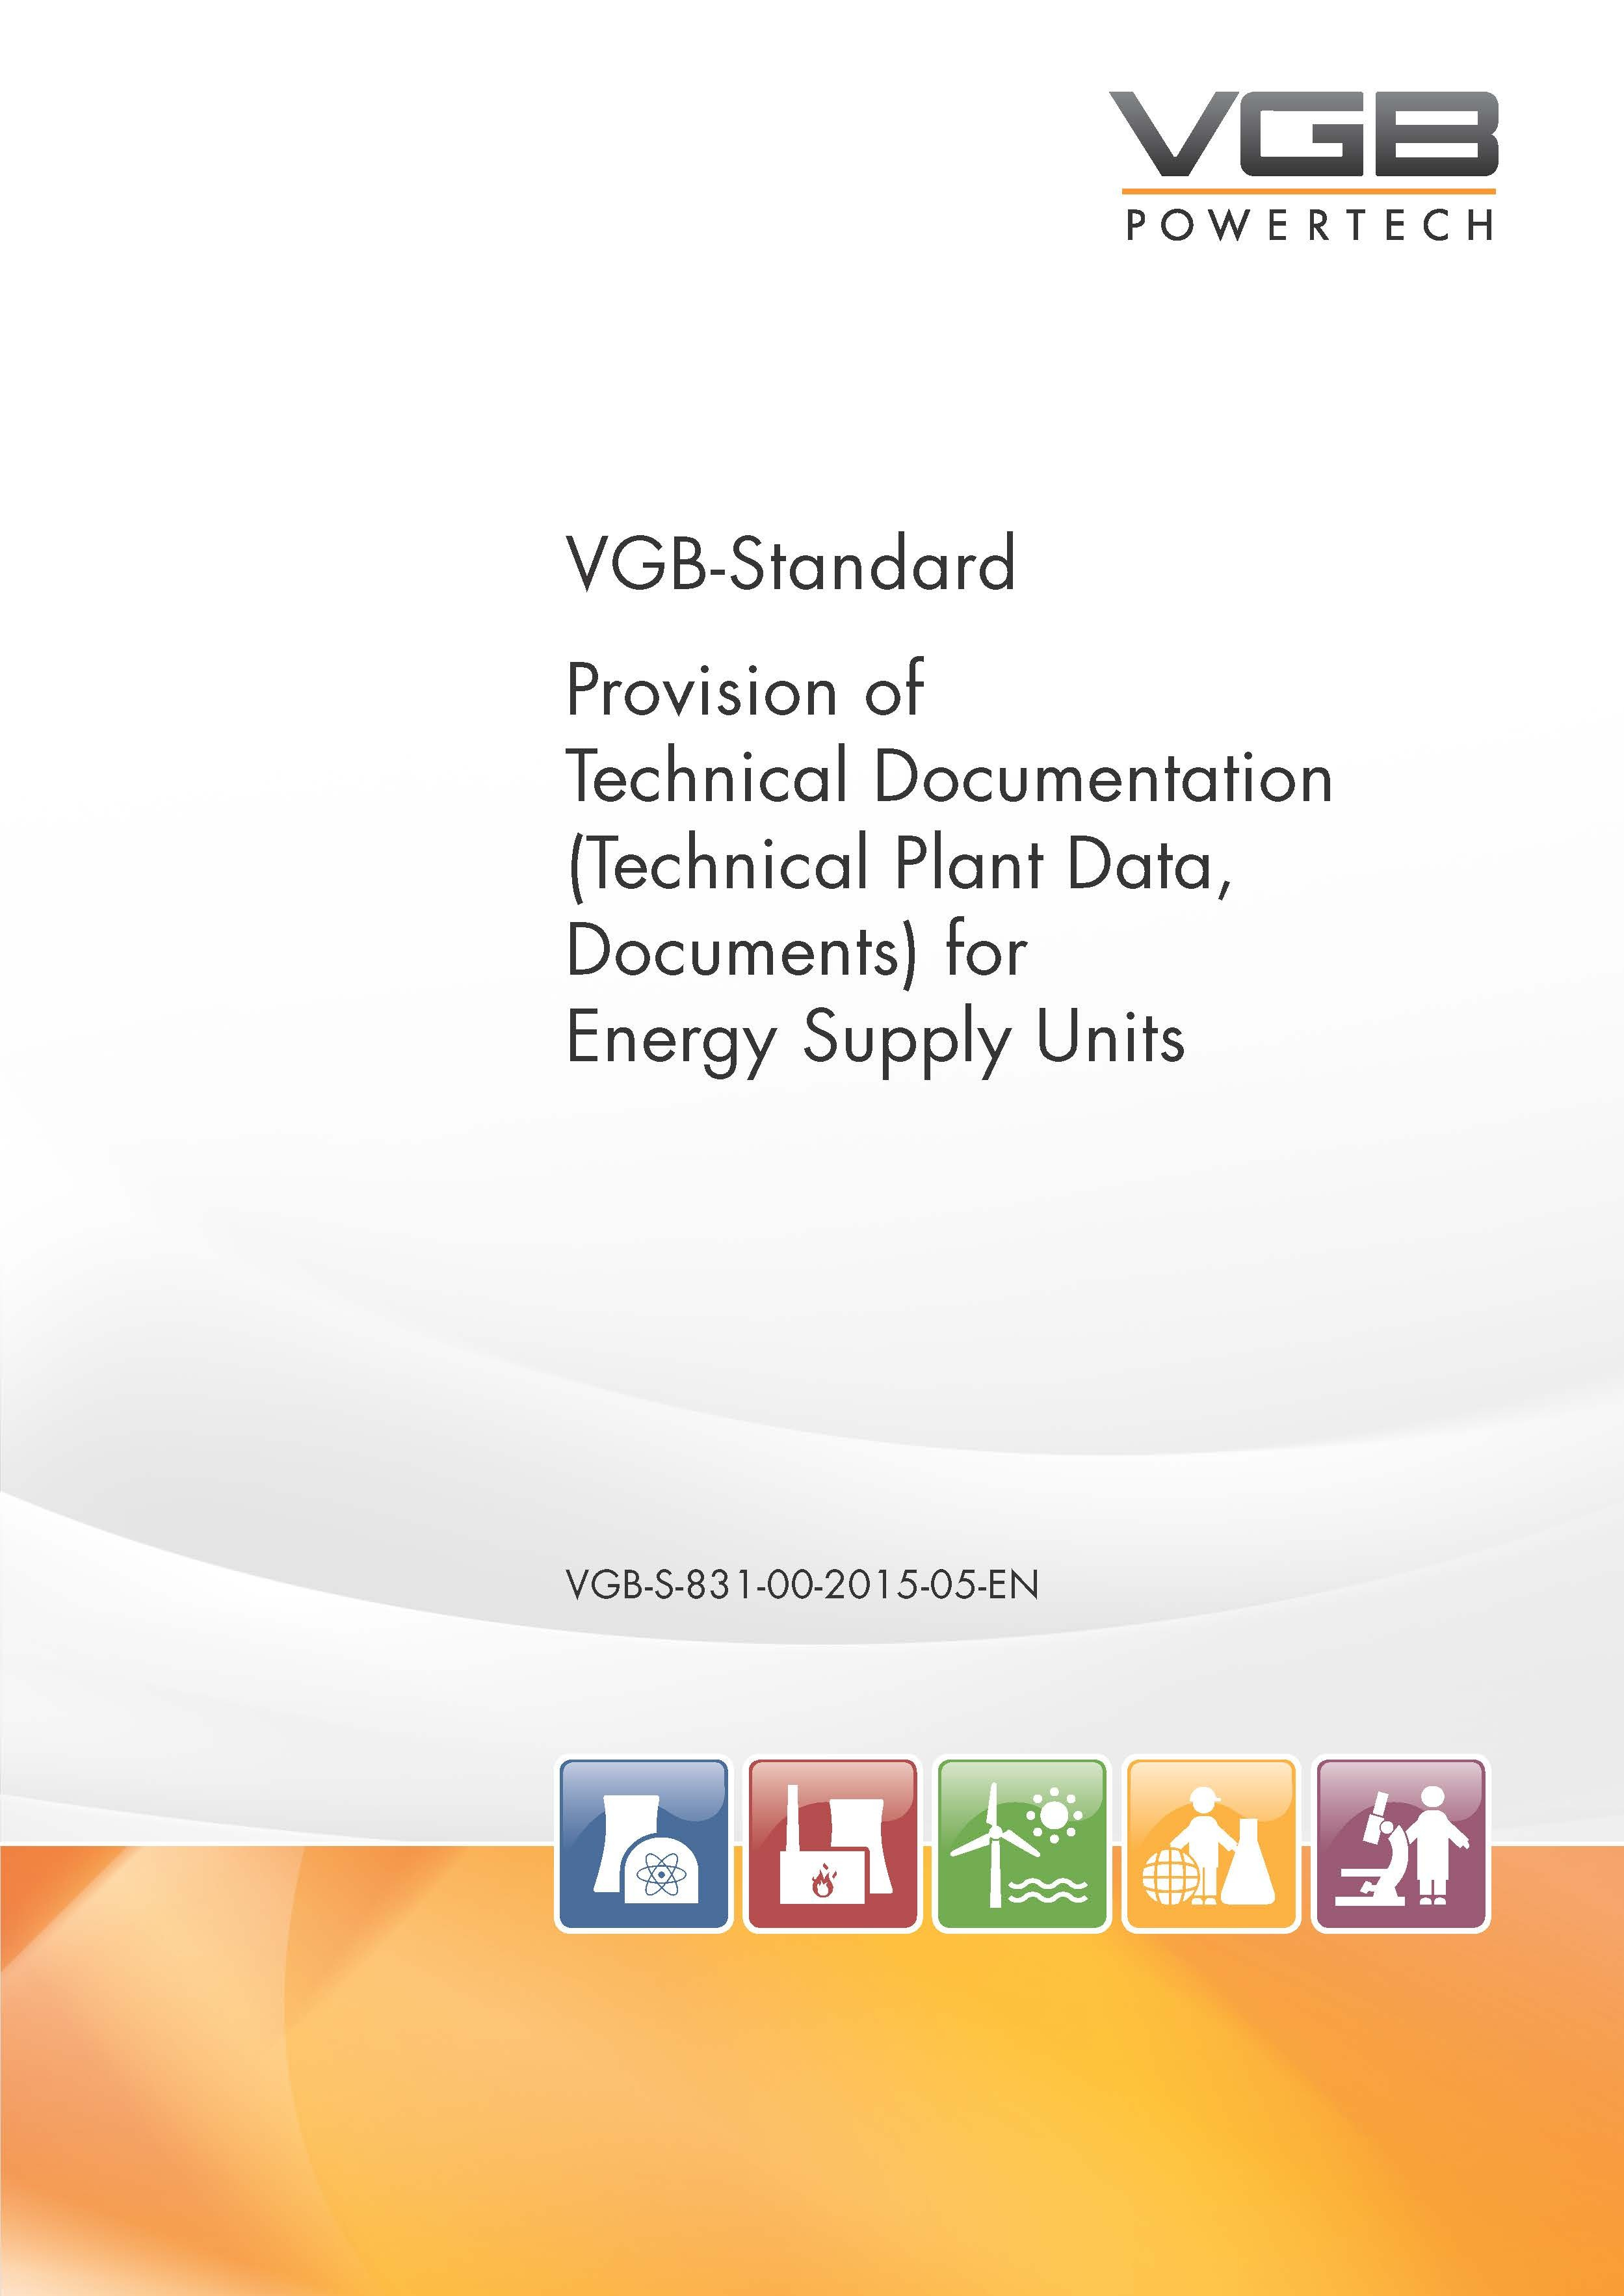 Provision of Technical Documentation (Technical Plant Data, Documents) for Energy Supply Units